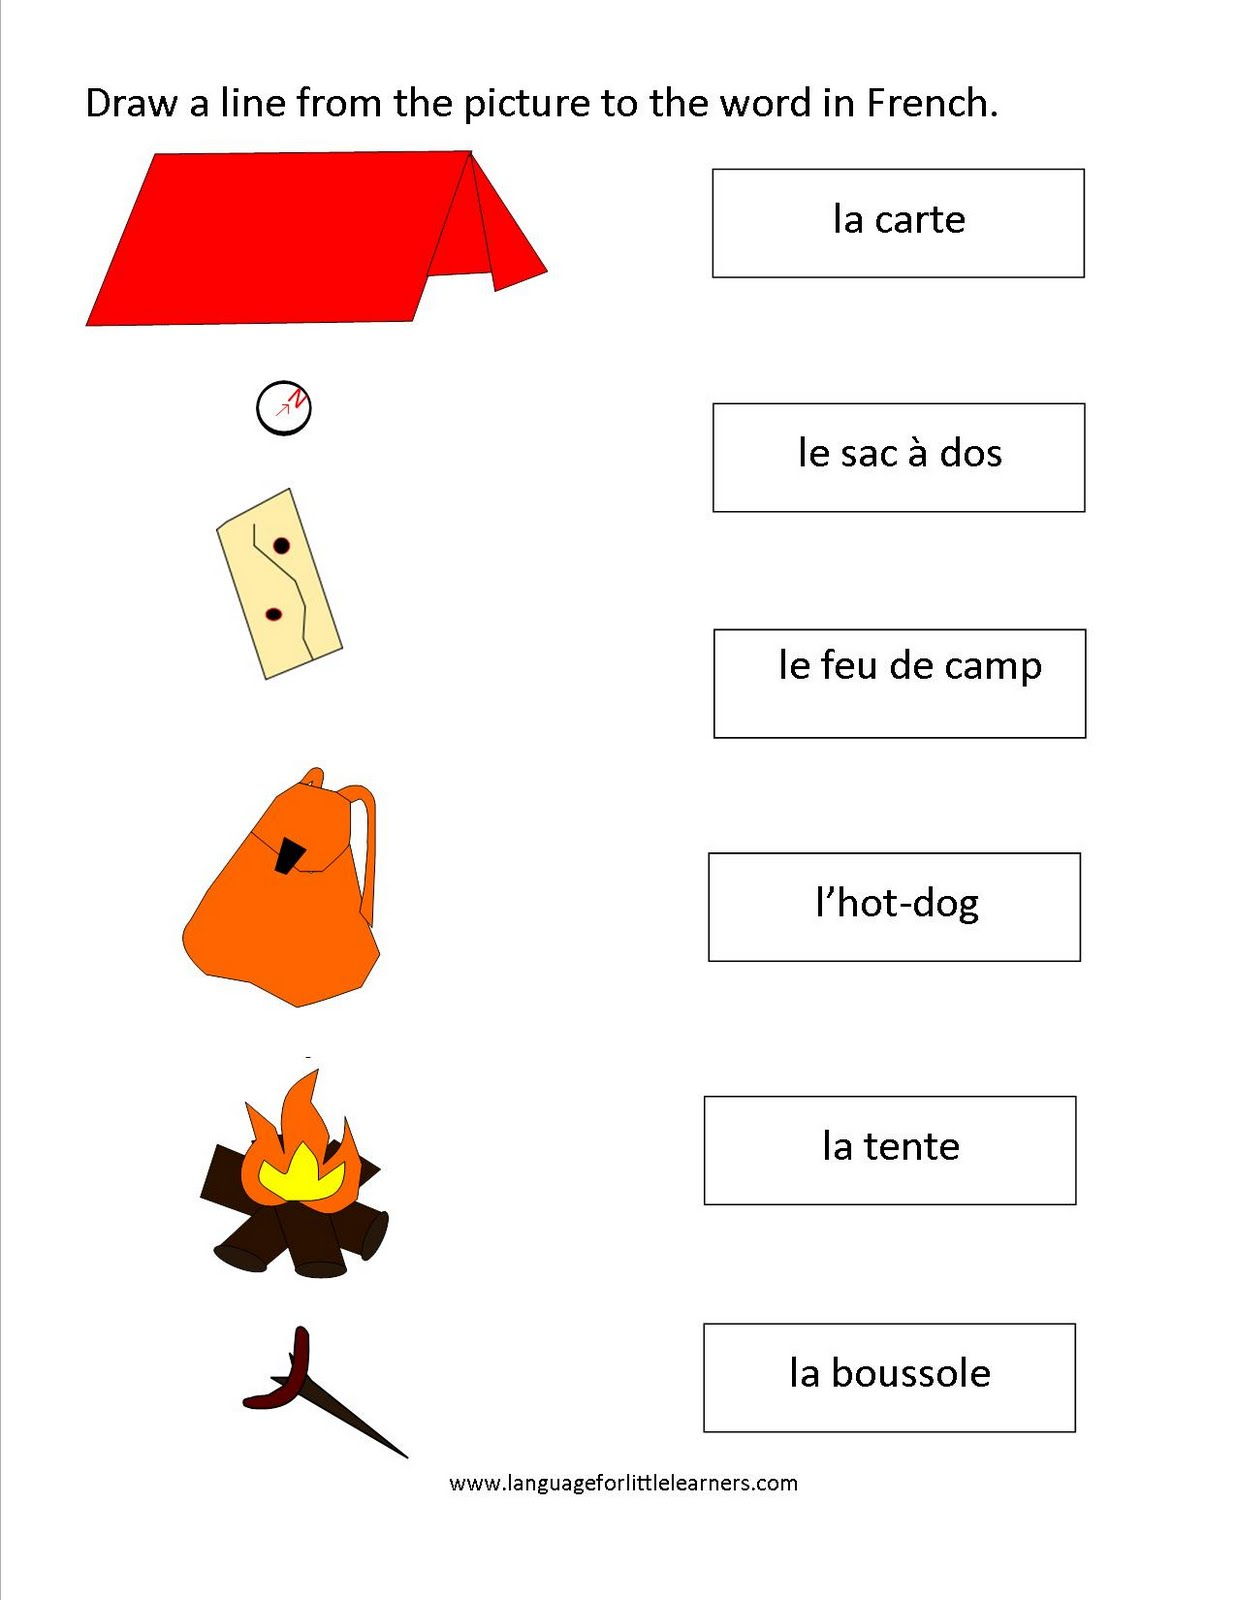 Language For Little Learners